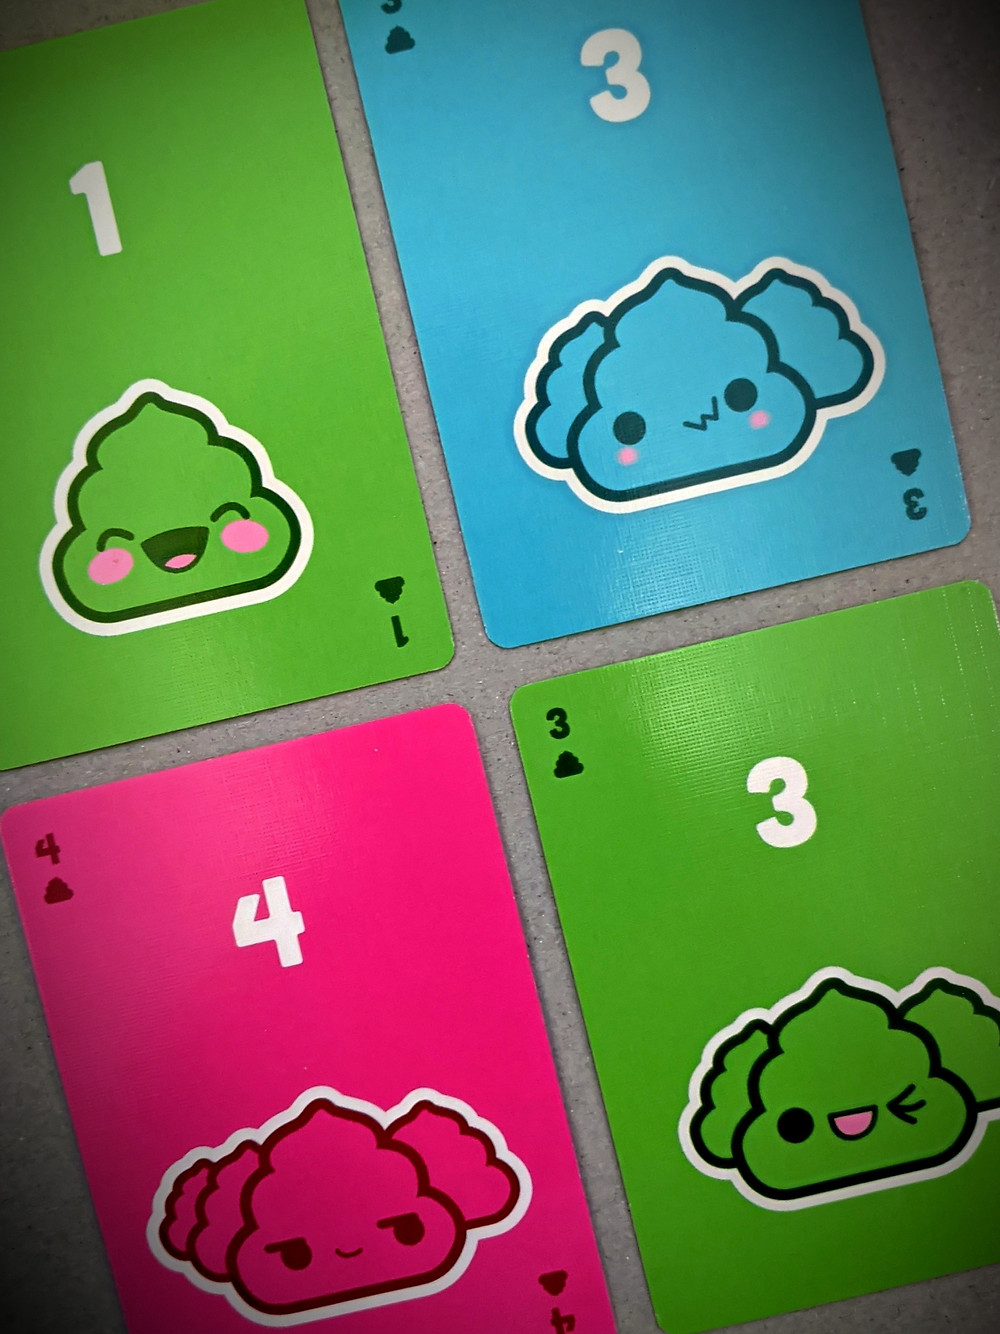 Poop: The Game Kawaii cards